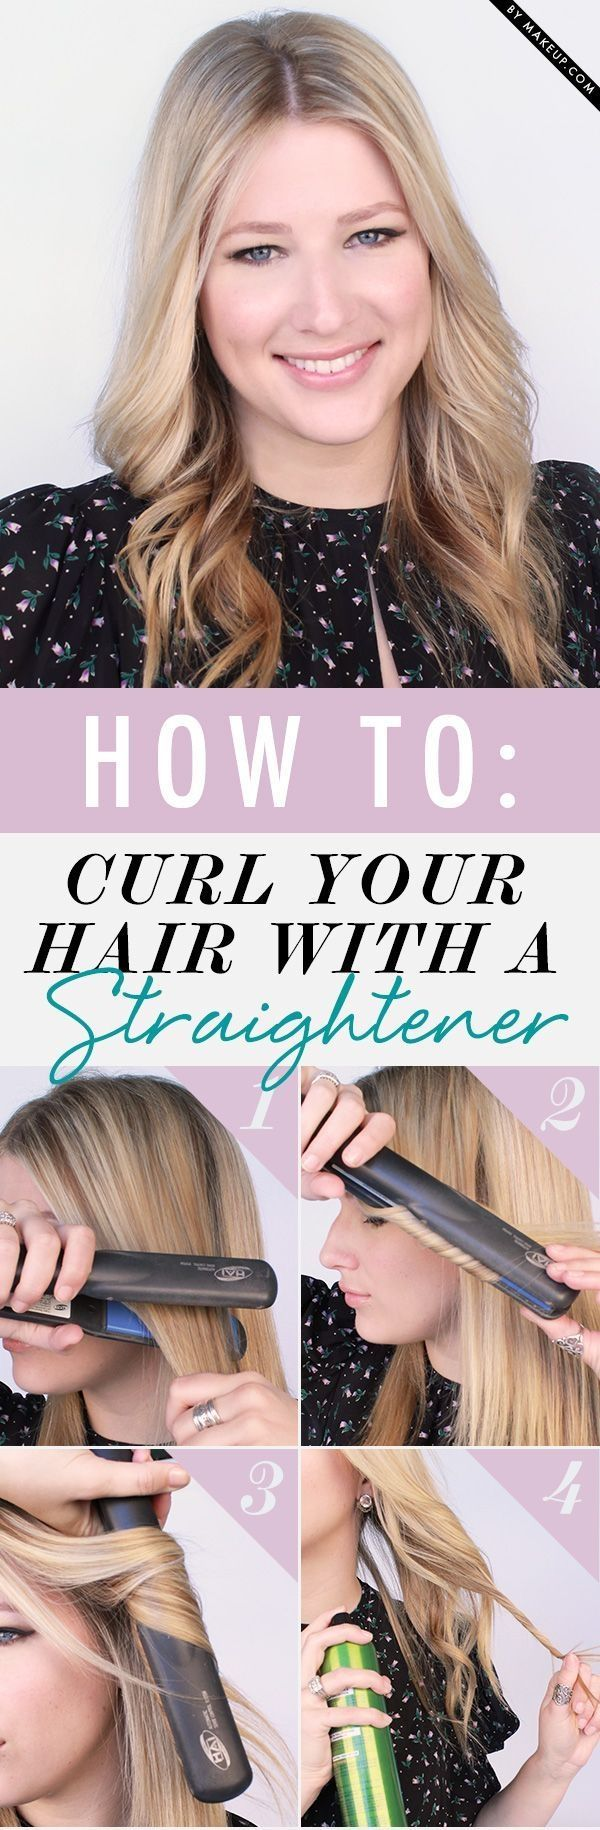 how to use a straightener to curl